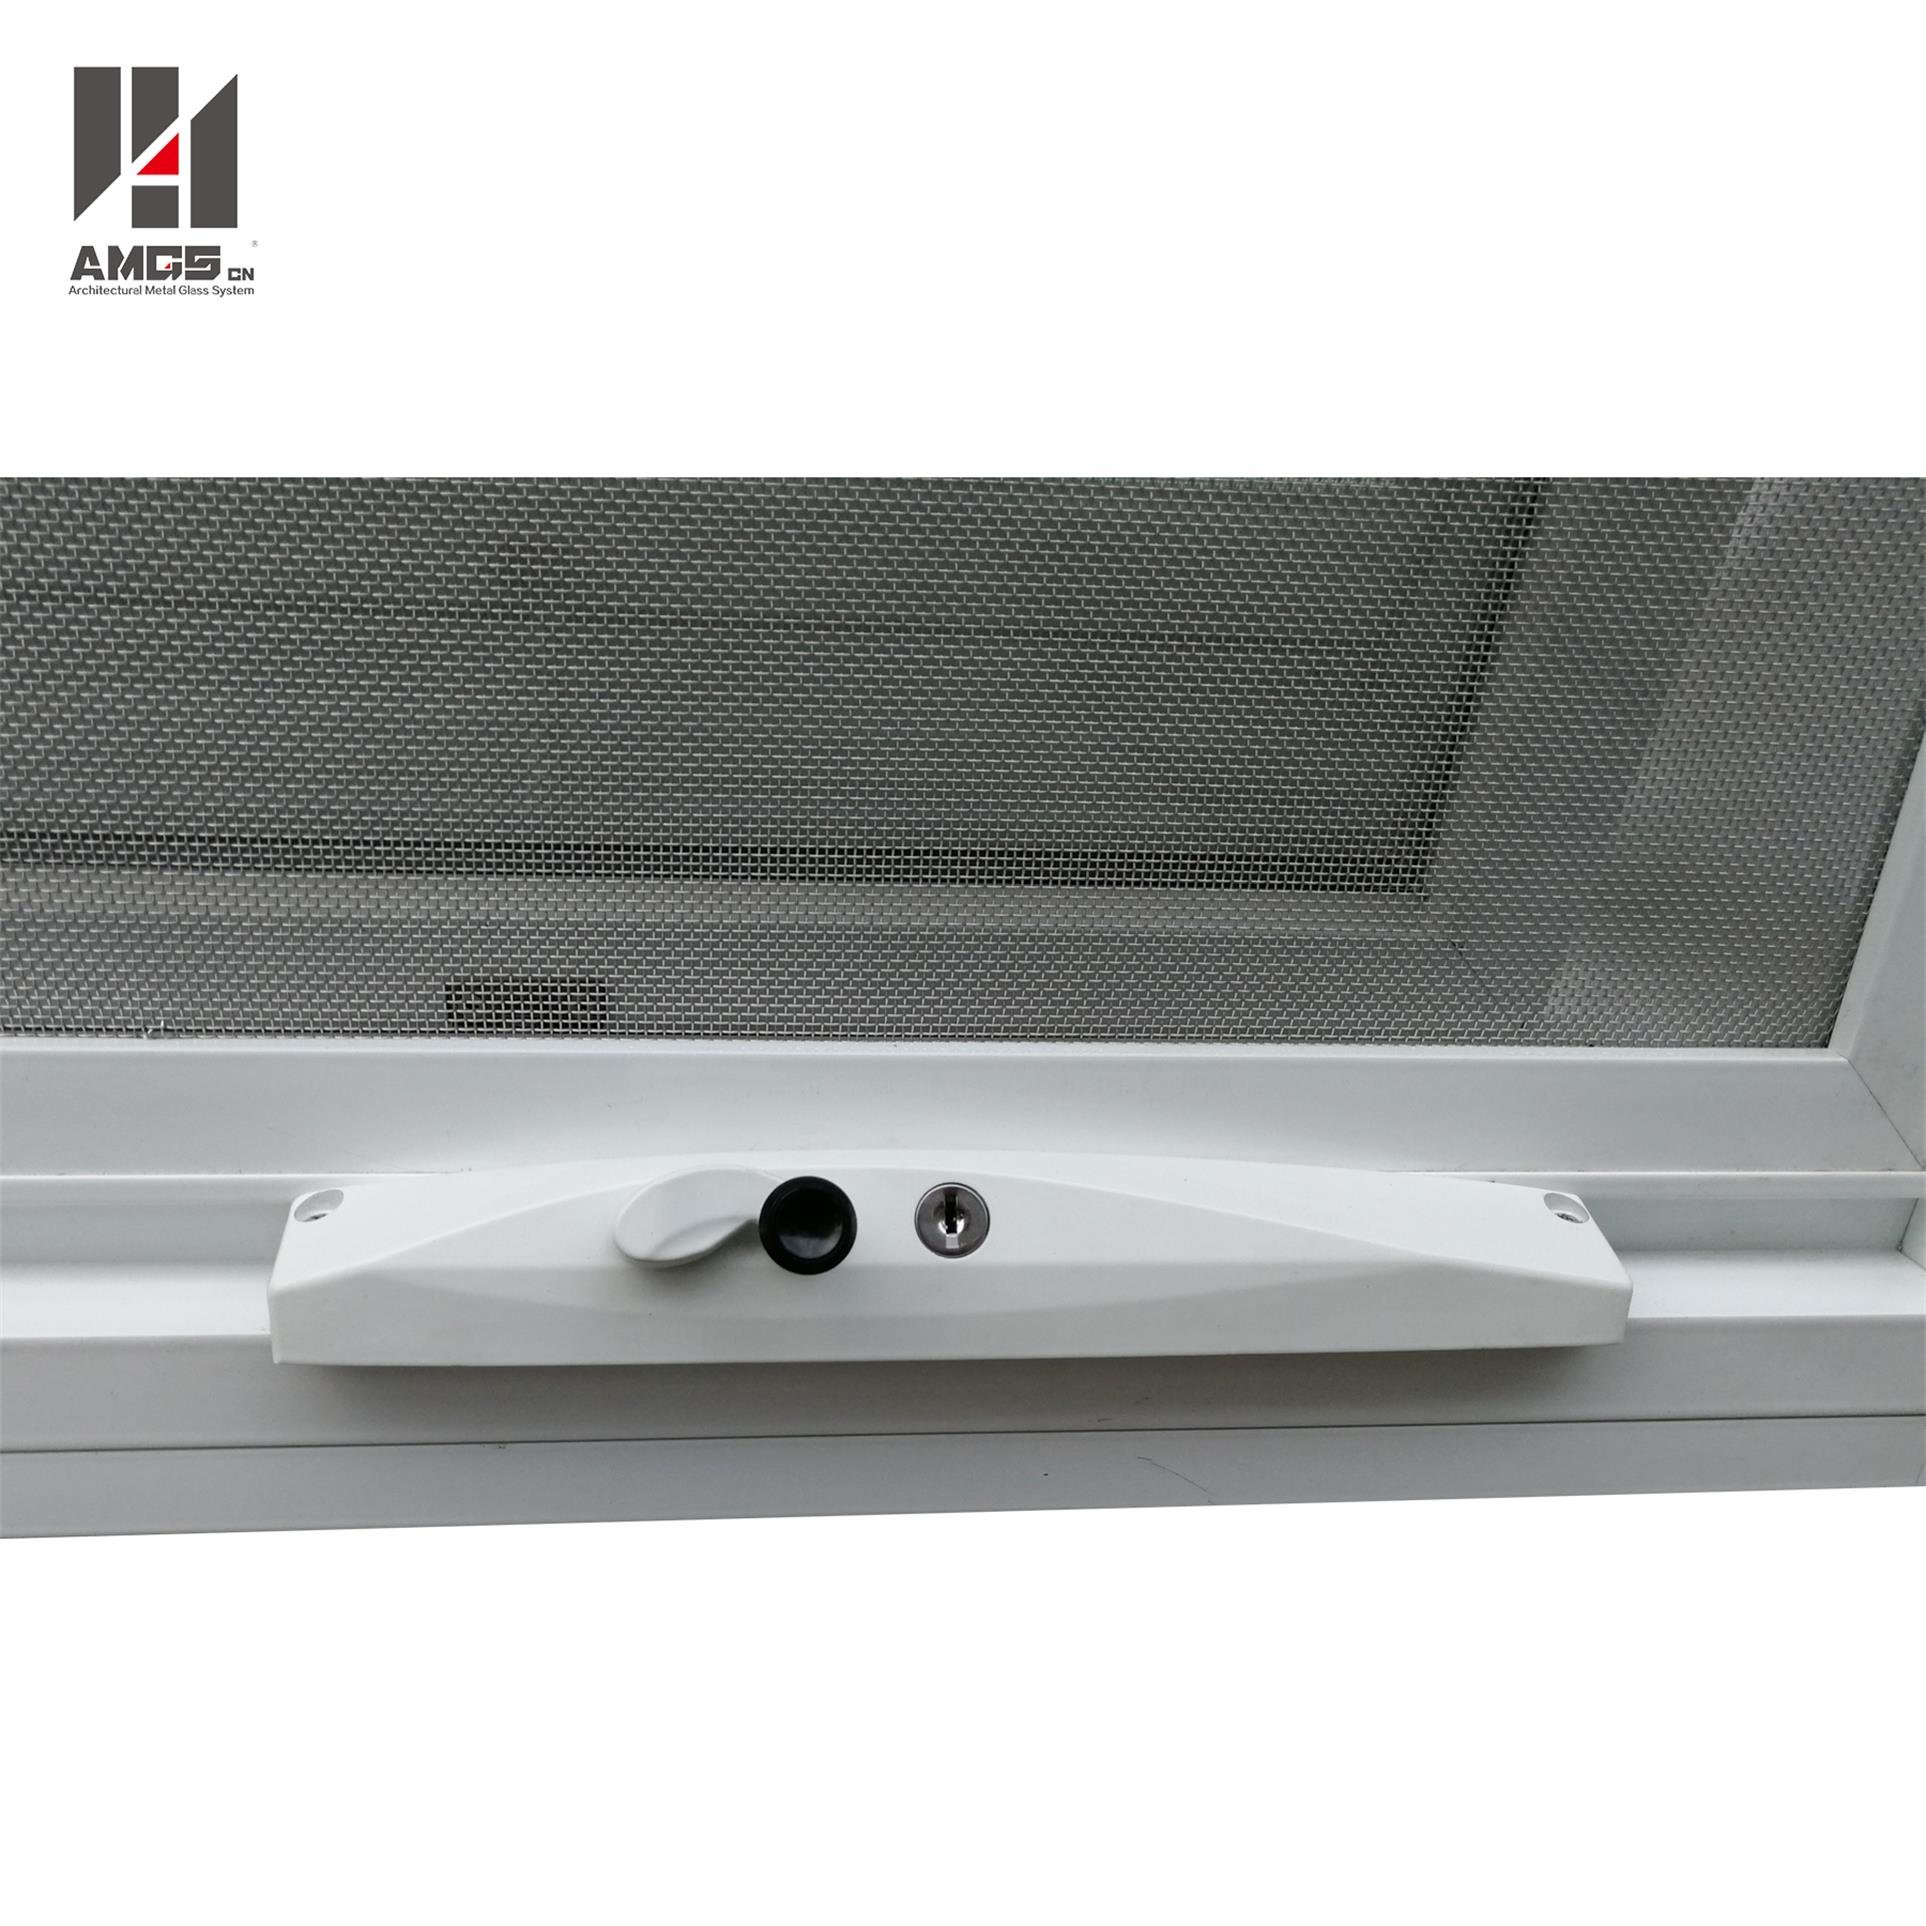 AMGS Customized Double Glazing Aluminum Awning Window With Crimsafe Screen Aluminum Awning Windows image4